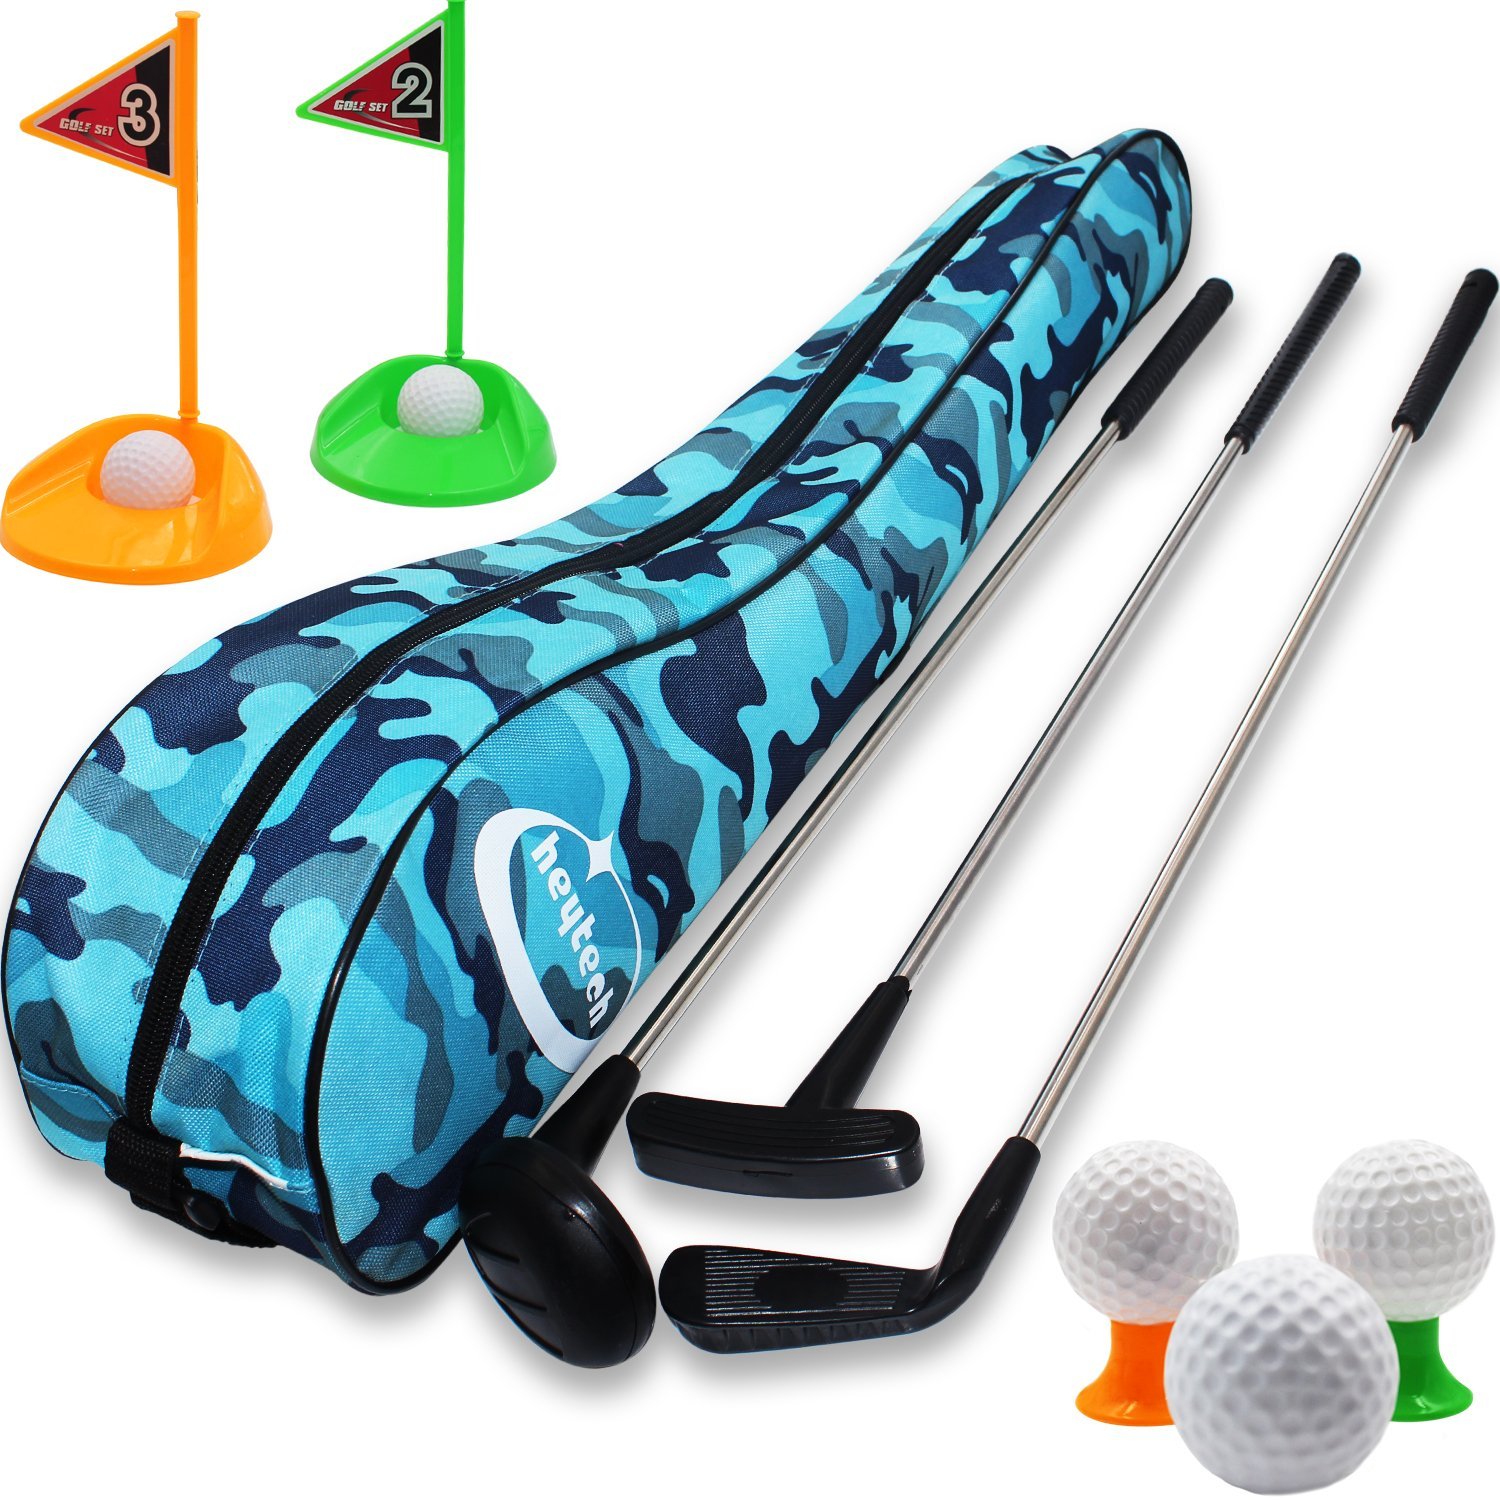 heytech Kid's Toy Golf Clubs Set Deluxe Outdoor Golf Toy Set Toddler, Children, Preschool Kids Early Educational Toy by heytech